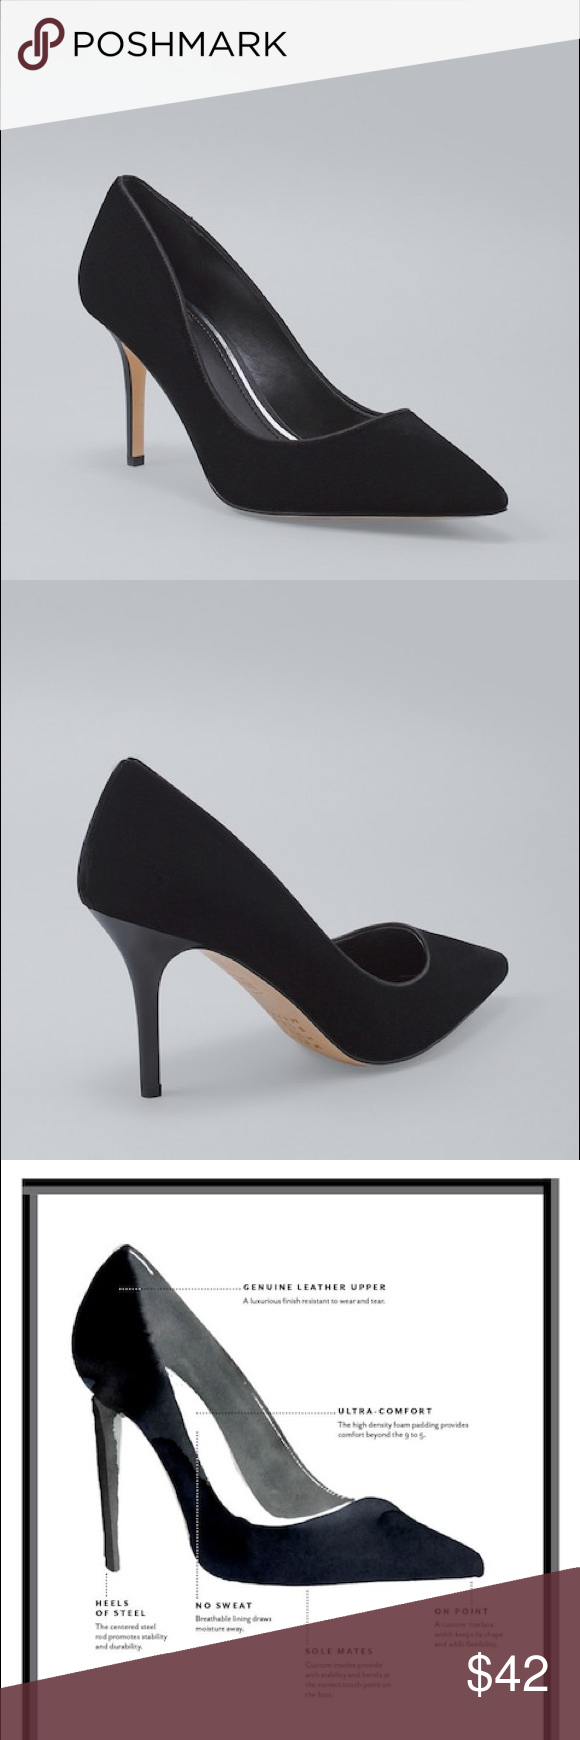 58004a84e4574 Black Velvet Pumps This Velvet Pump lends a modern touch to the classic  pumps that will